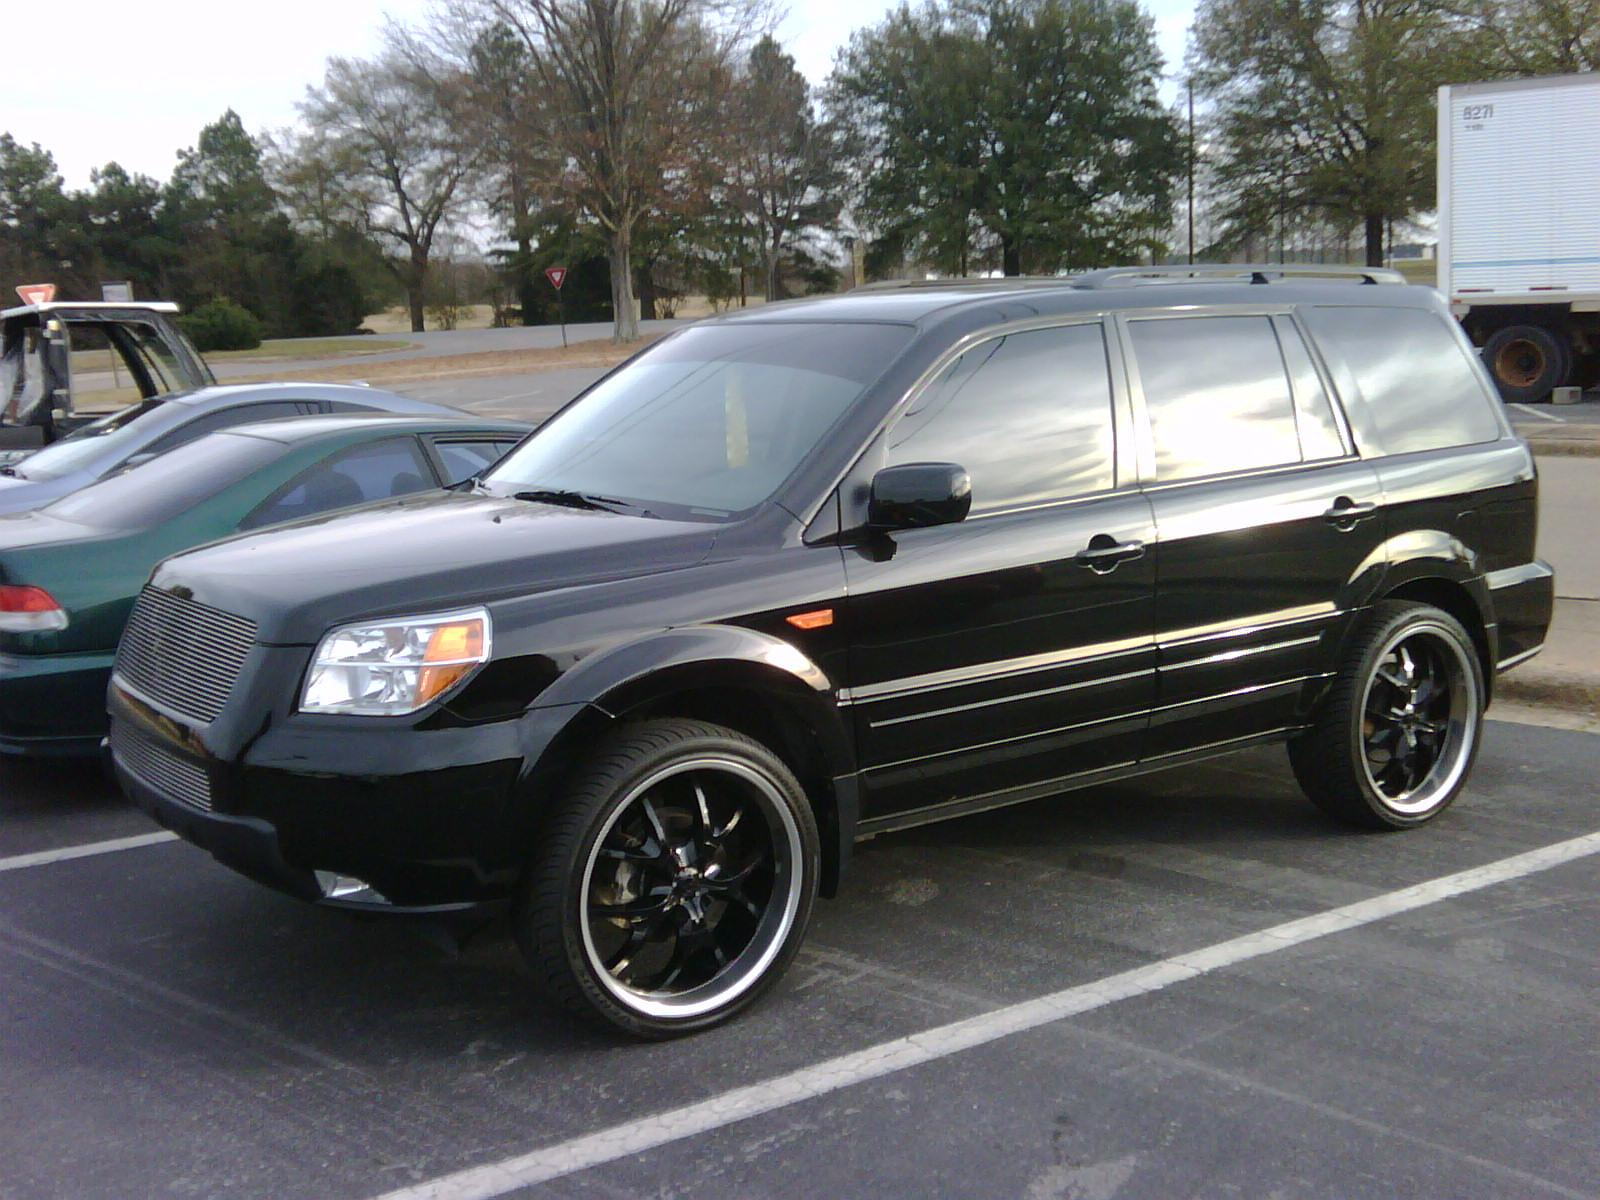 RustY 2008 Honda Pilot Specs Photos Modification Info at CarDomain